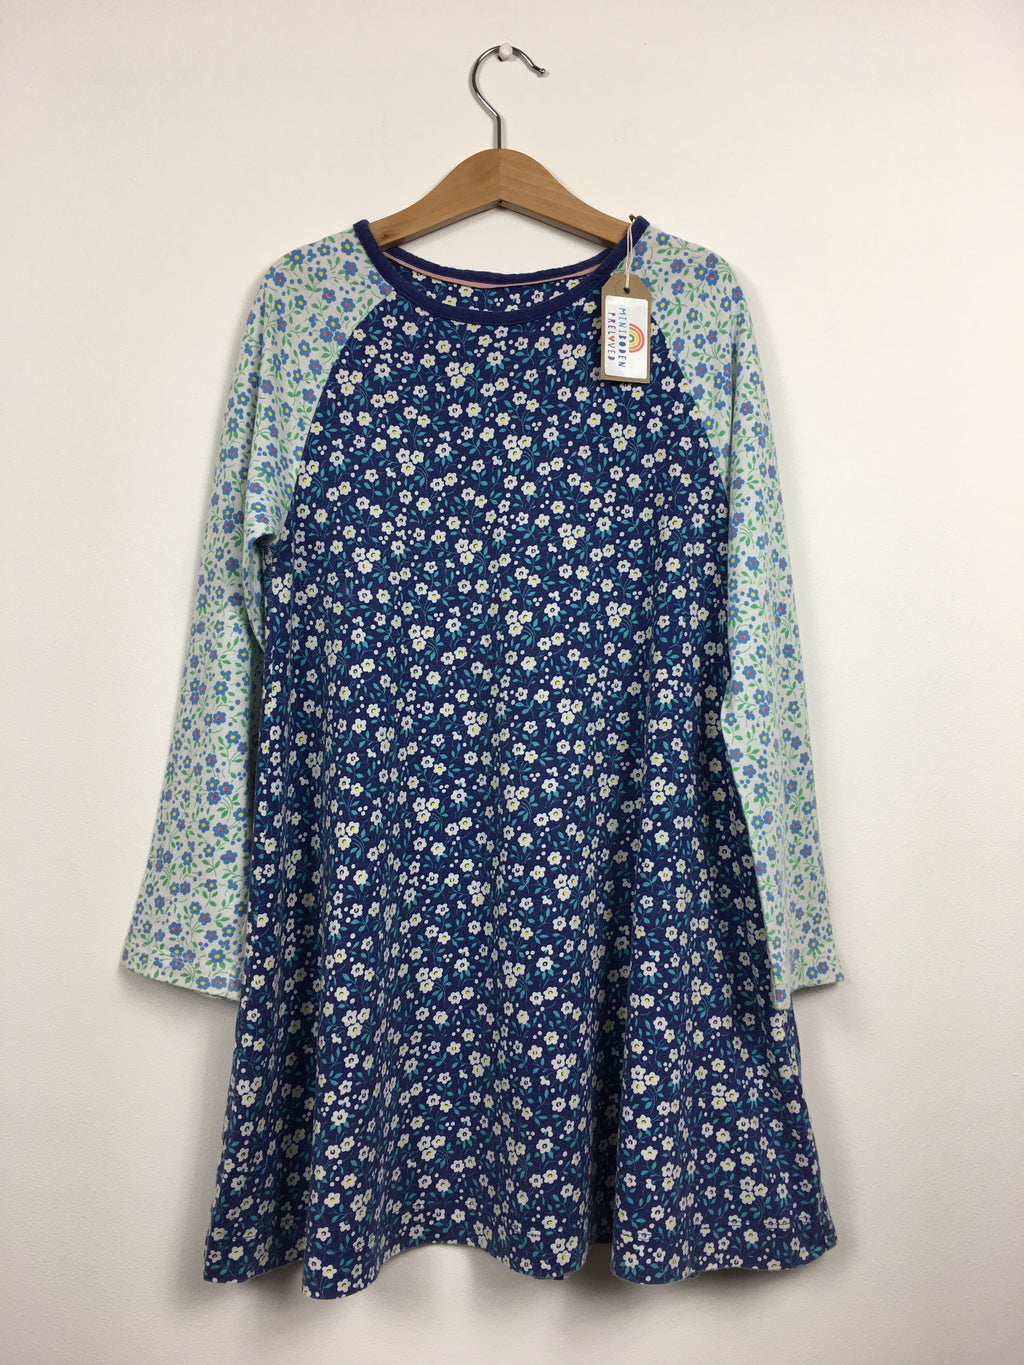 Pretty Floral Cotton Dress (7-8 Years)